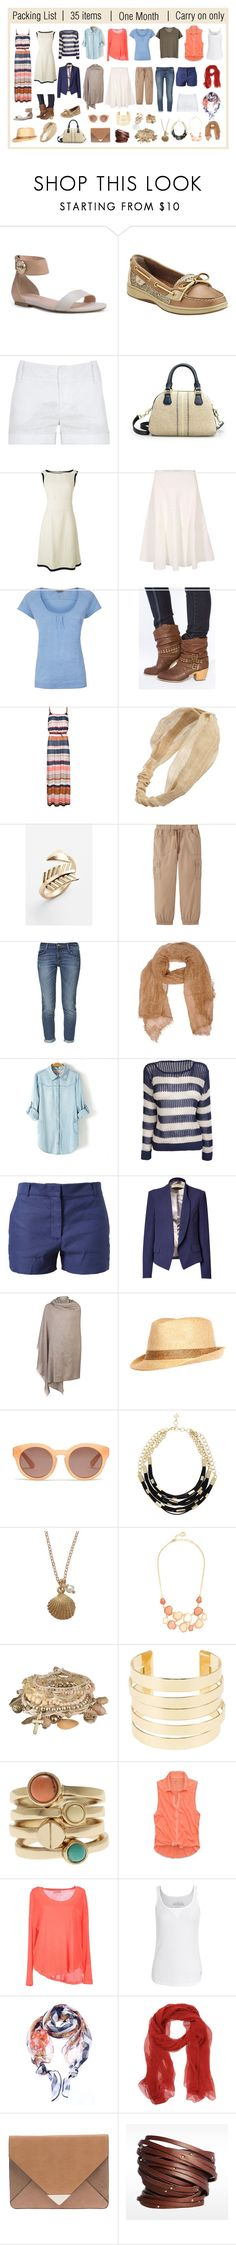 Packing list by tianarutledge on Polyvore featuring L.K.Bennett, Gat Rimon, Hollister Co., Jigsaw, True Religion, Paul Smith, Great Plains, Zara, Uniqlo and Acne Studios